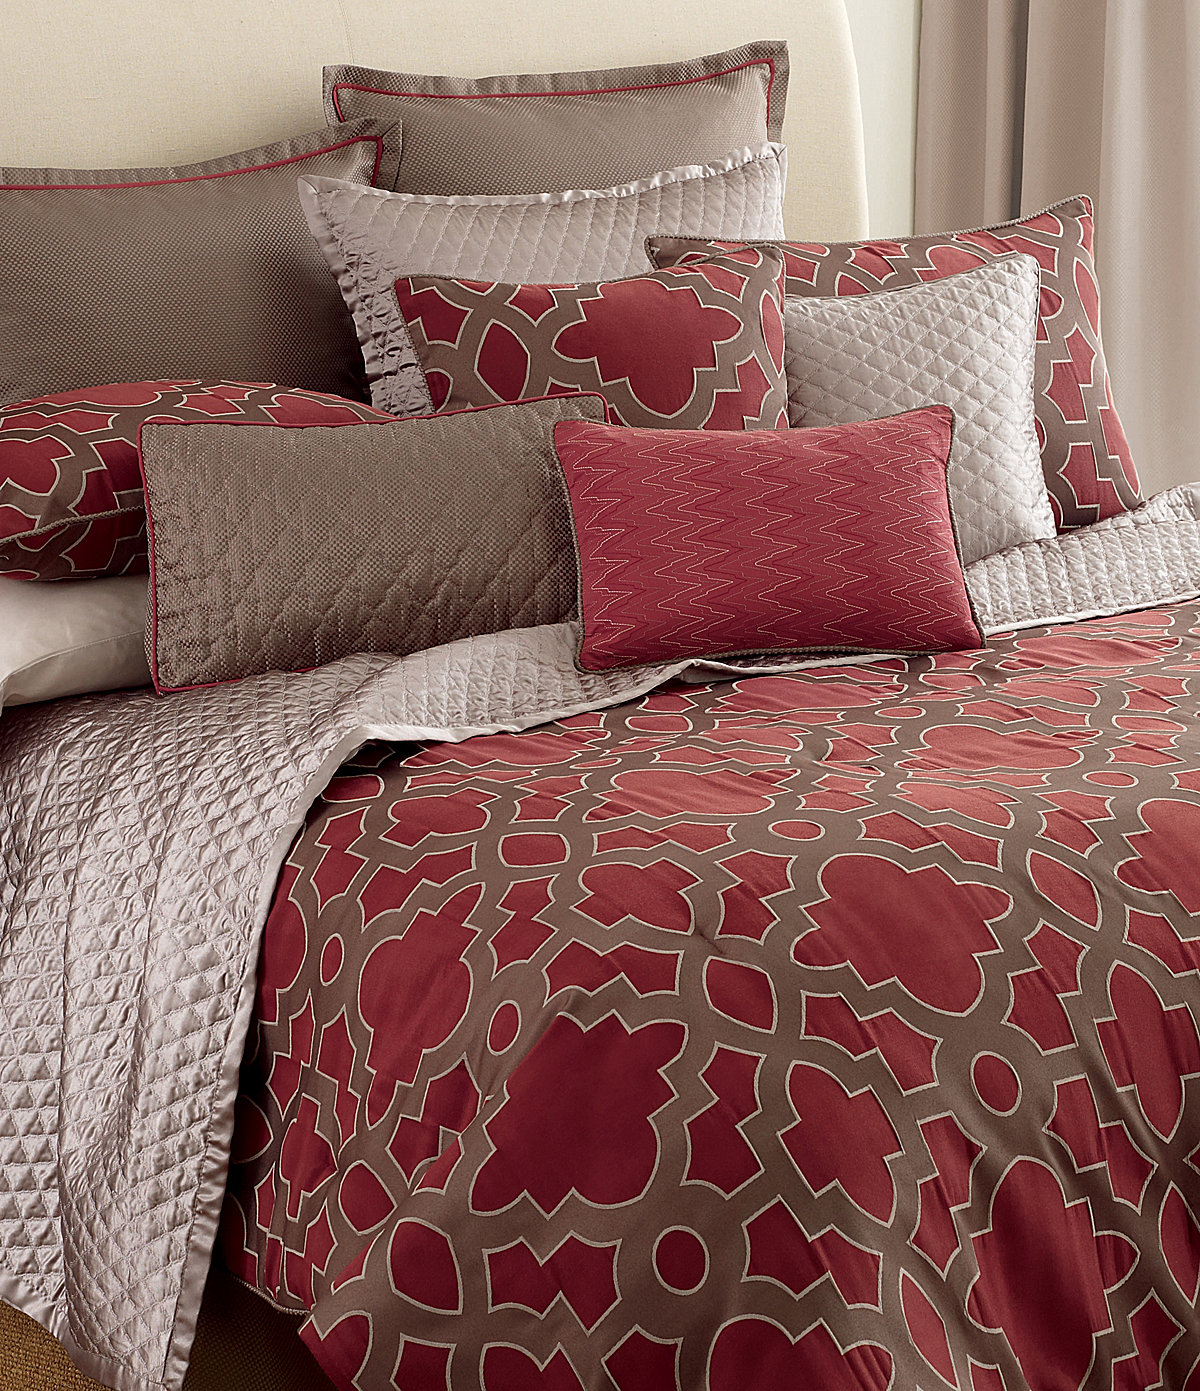 Modern Furniture Design 2013 Candice Olson Bedding Collection from Dillard  sModern Furniture Design 2013 Candice Olson Bedding Collection. Dillards Bedroom Comforter Sets  Find this Pin and more on bedroom